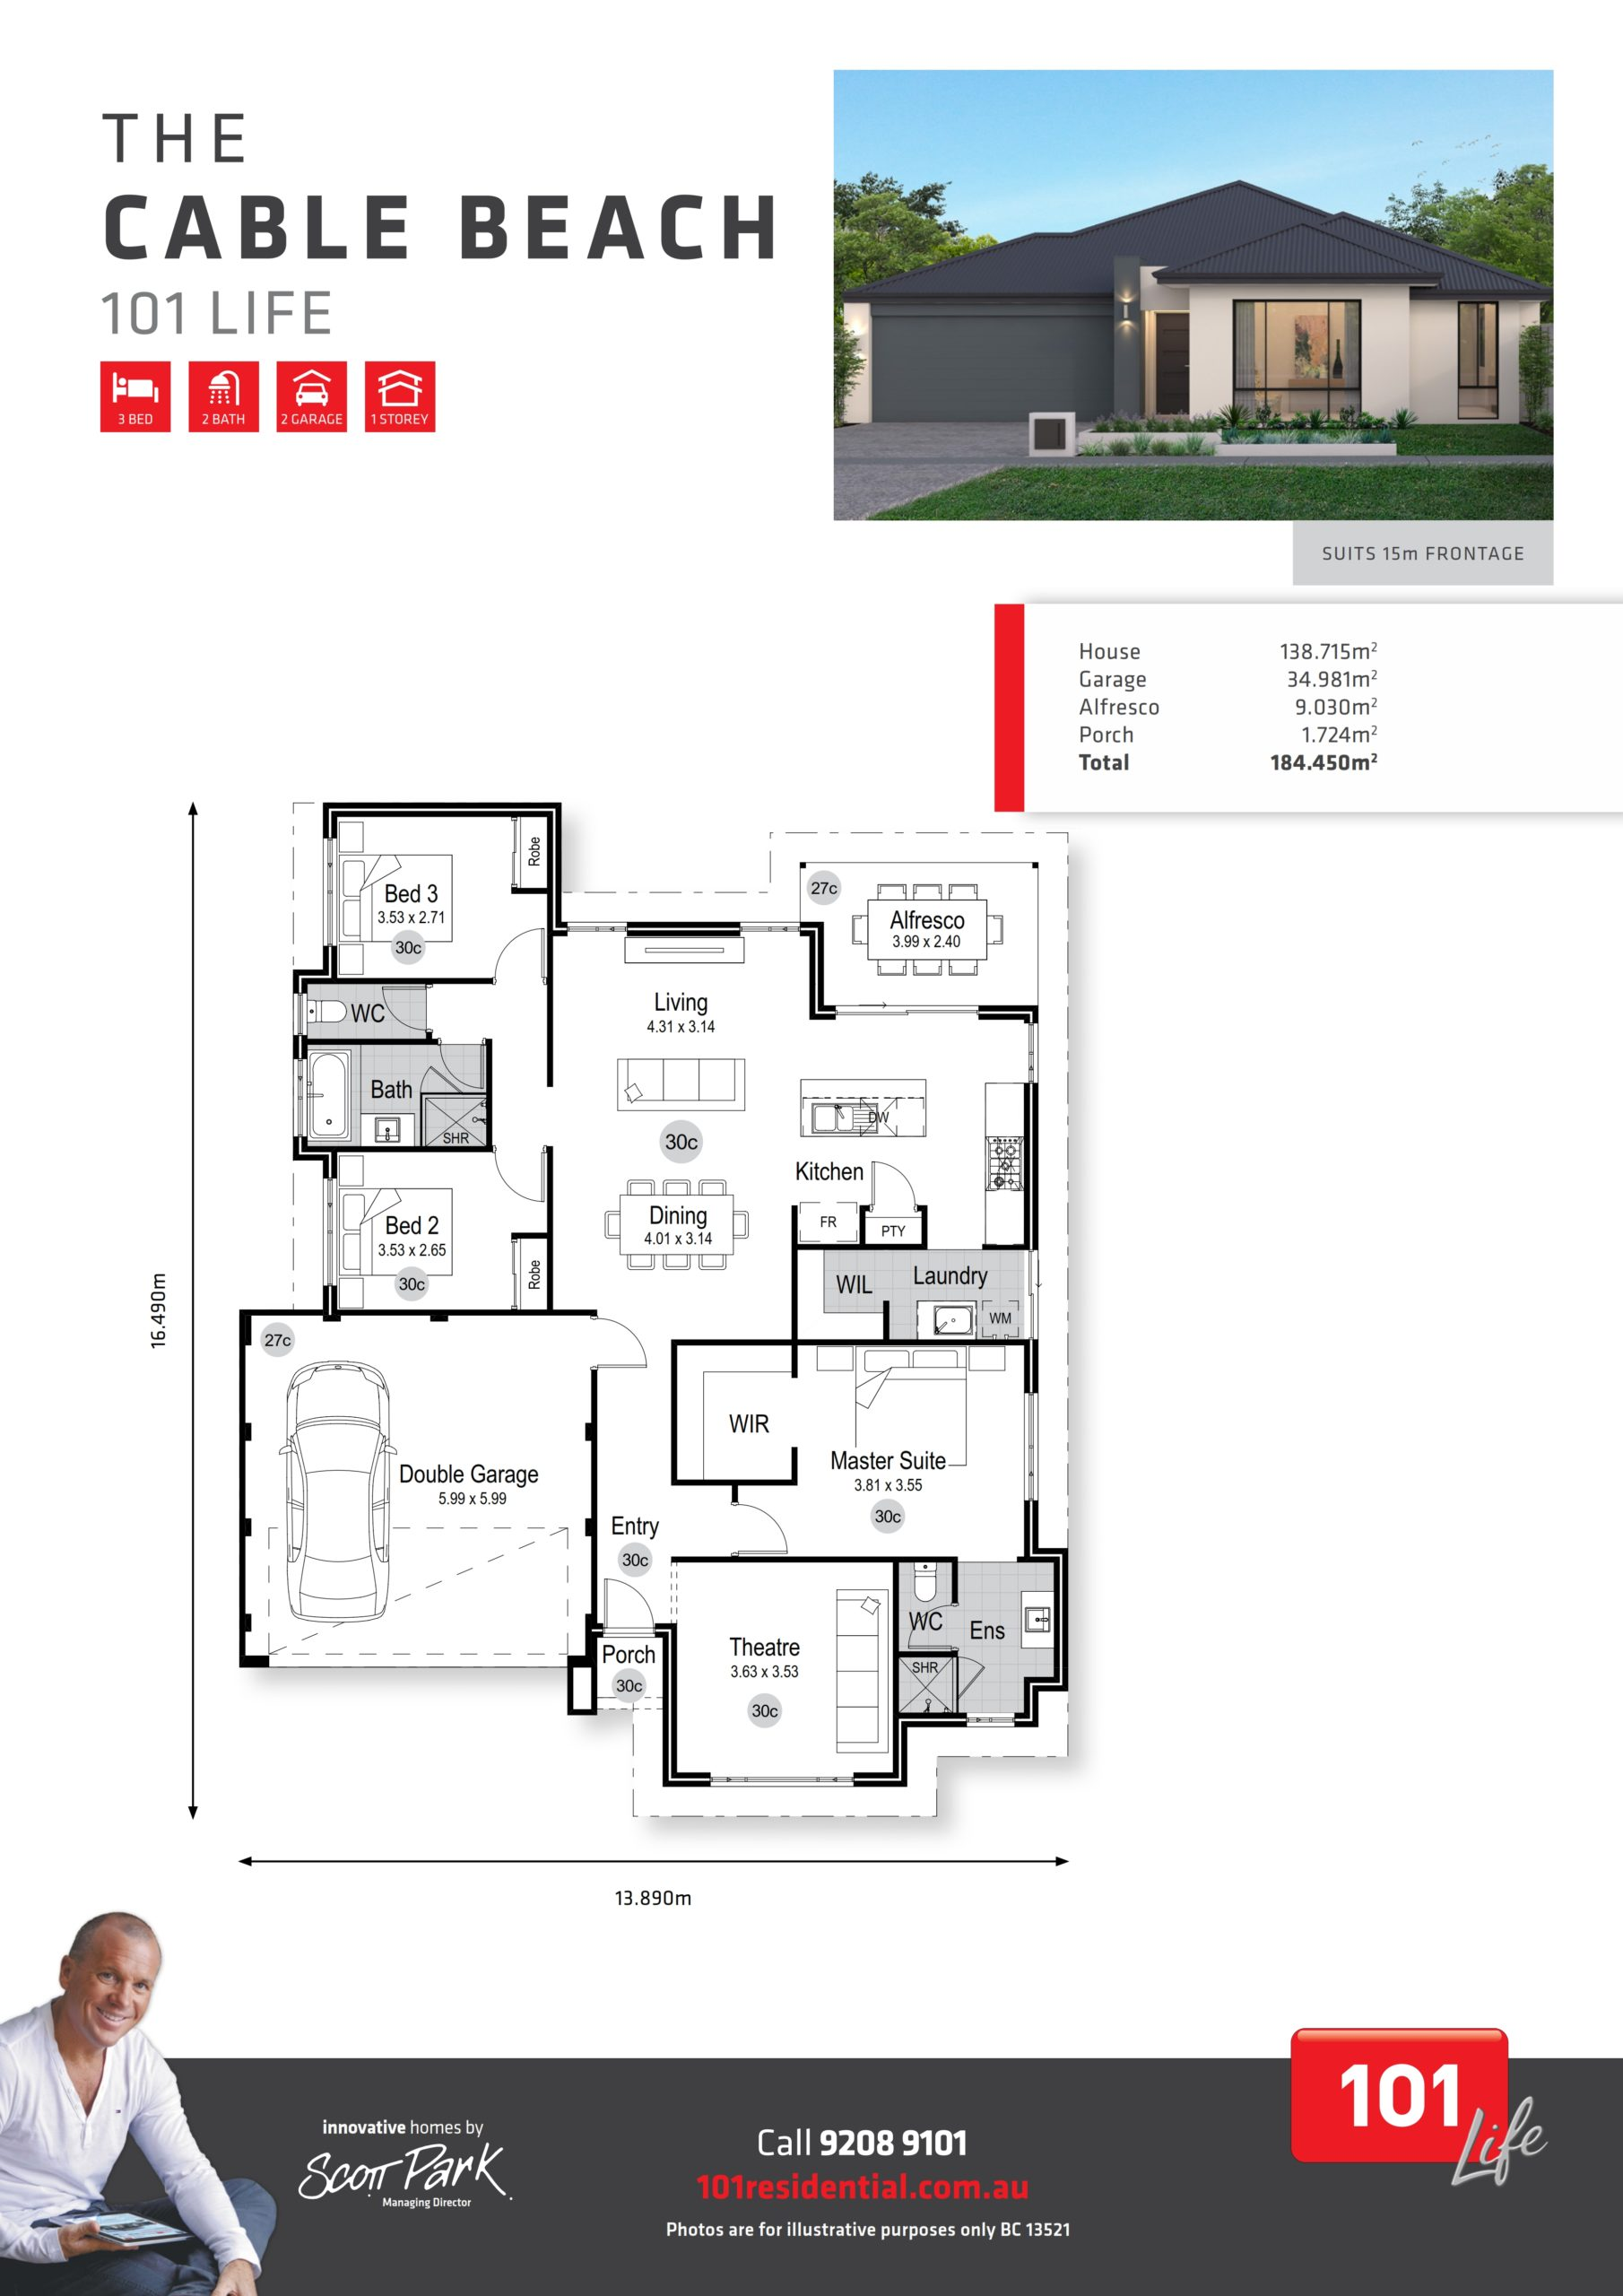 101 Life A3 Floor Plan - Cable Beach WEB_001